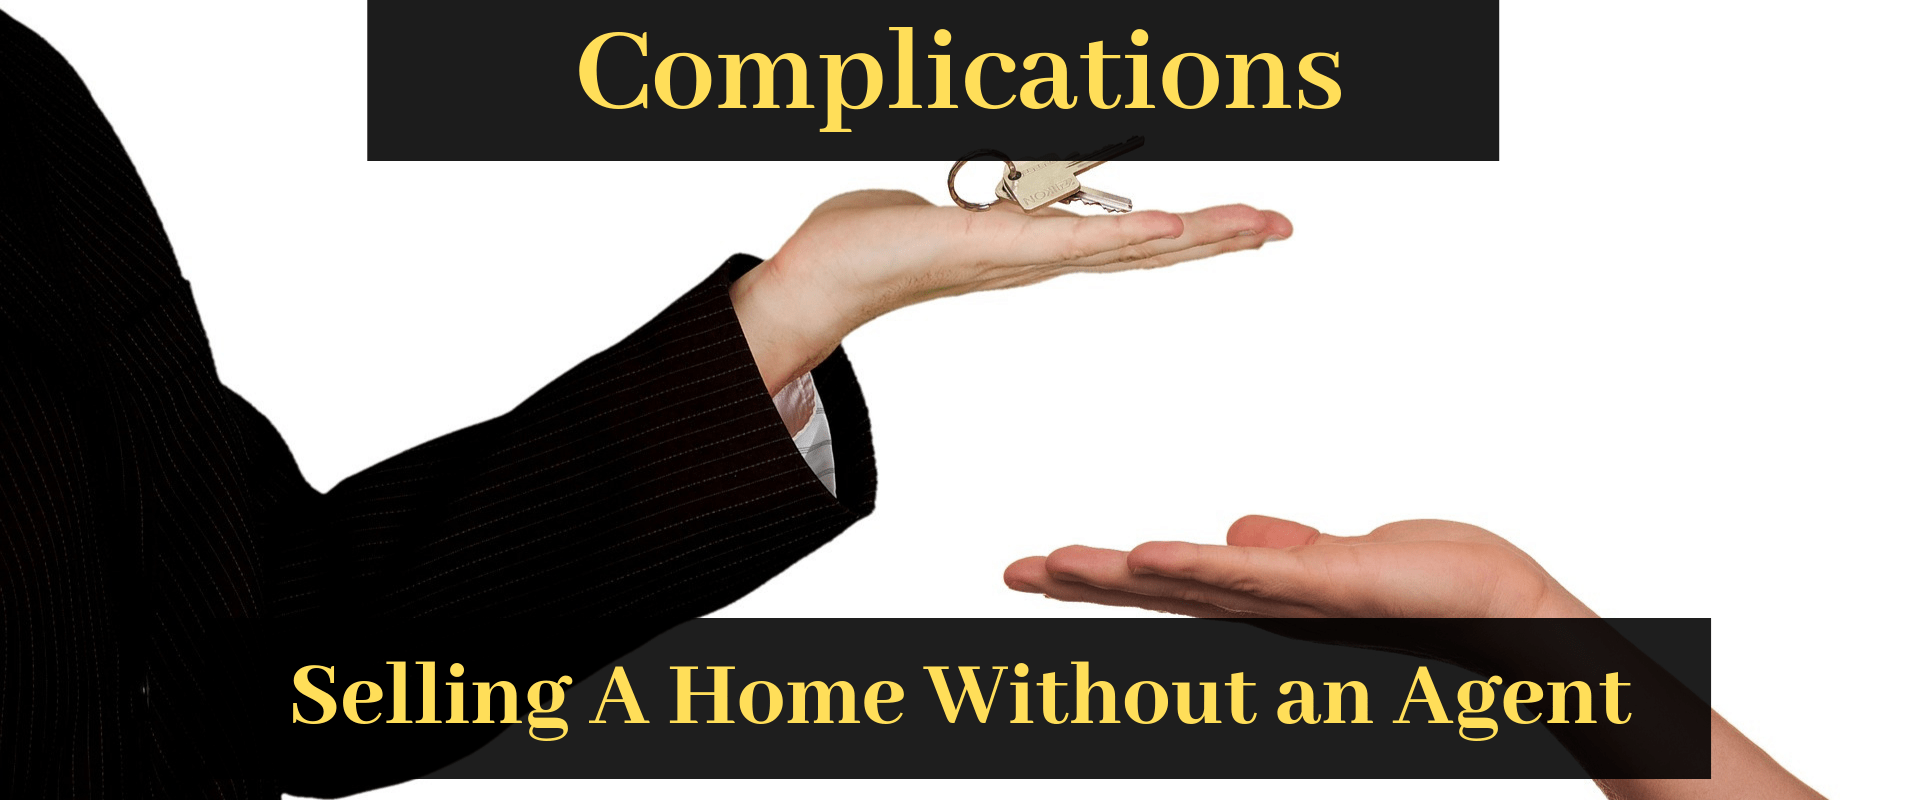 Home Selling Without an Agent (1)